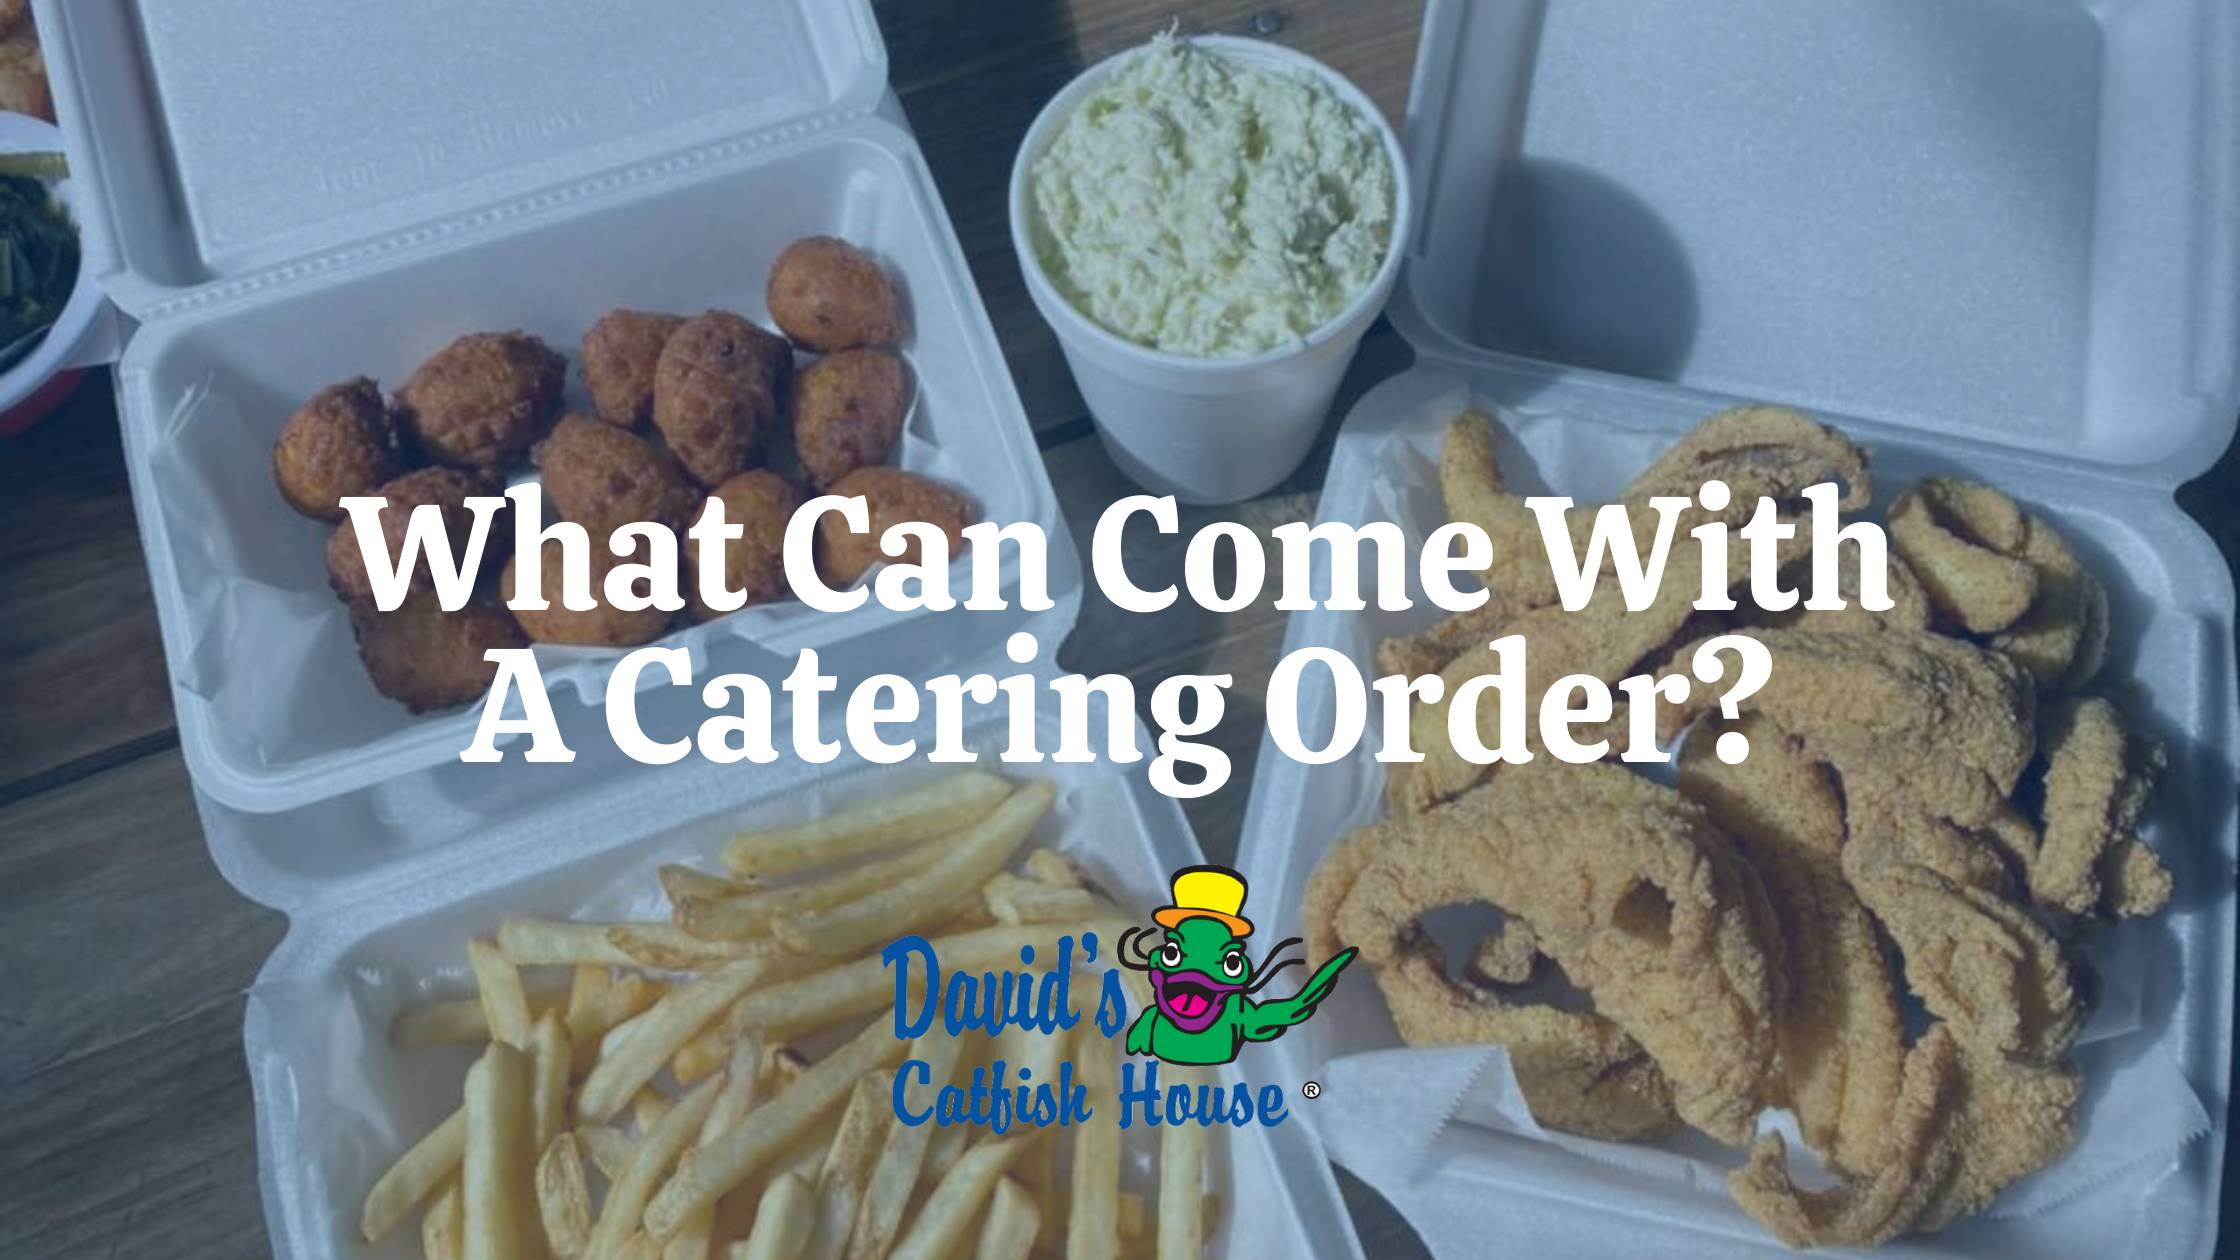 What Can Come With a Catering Order?